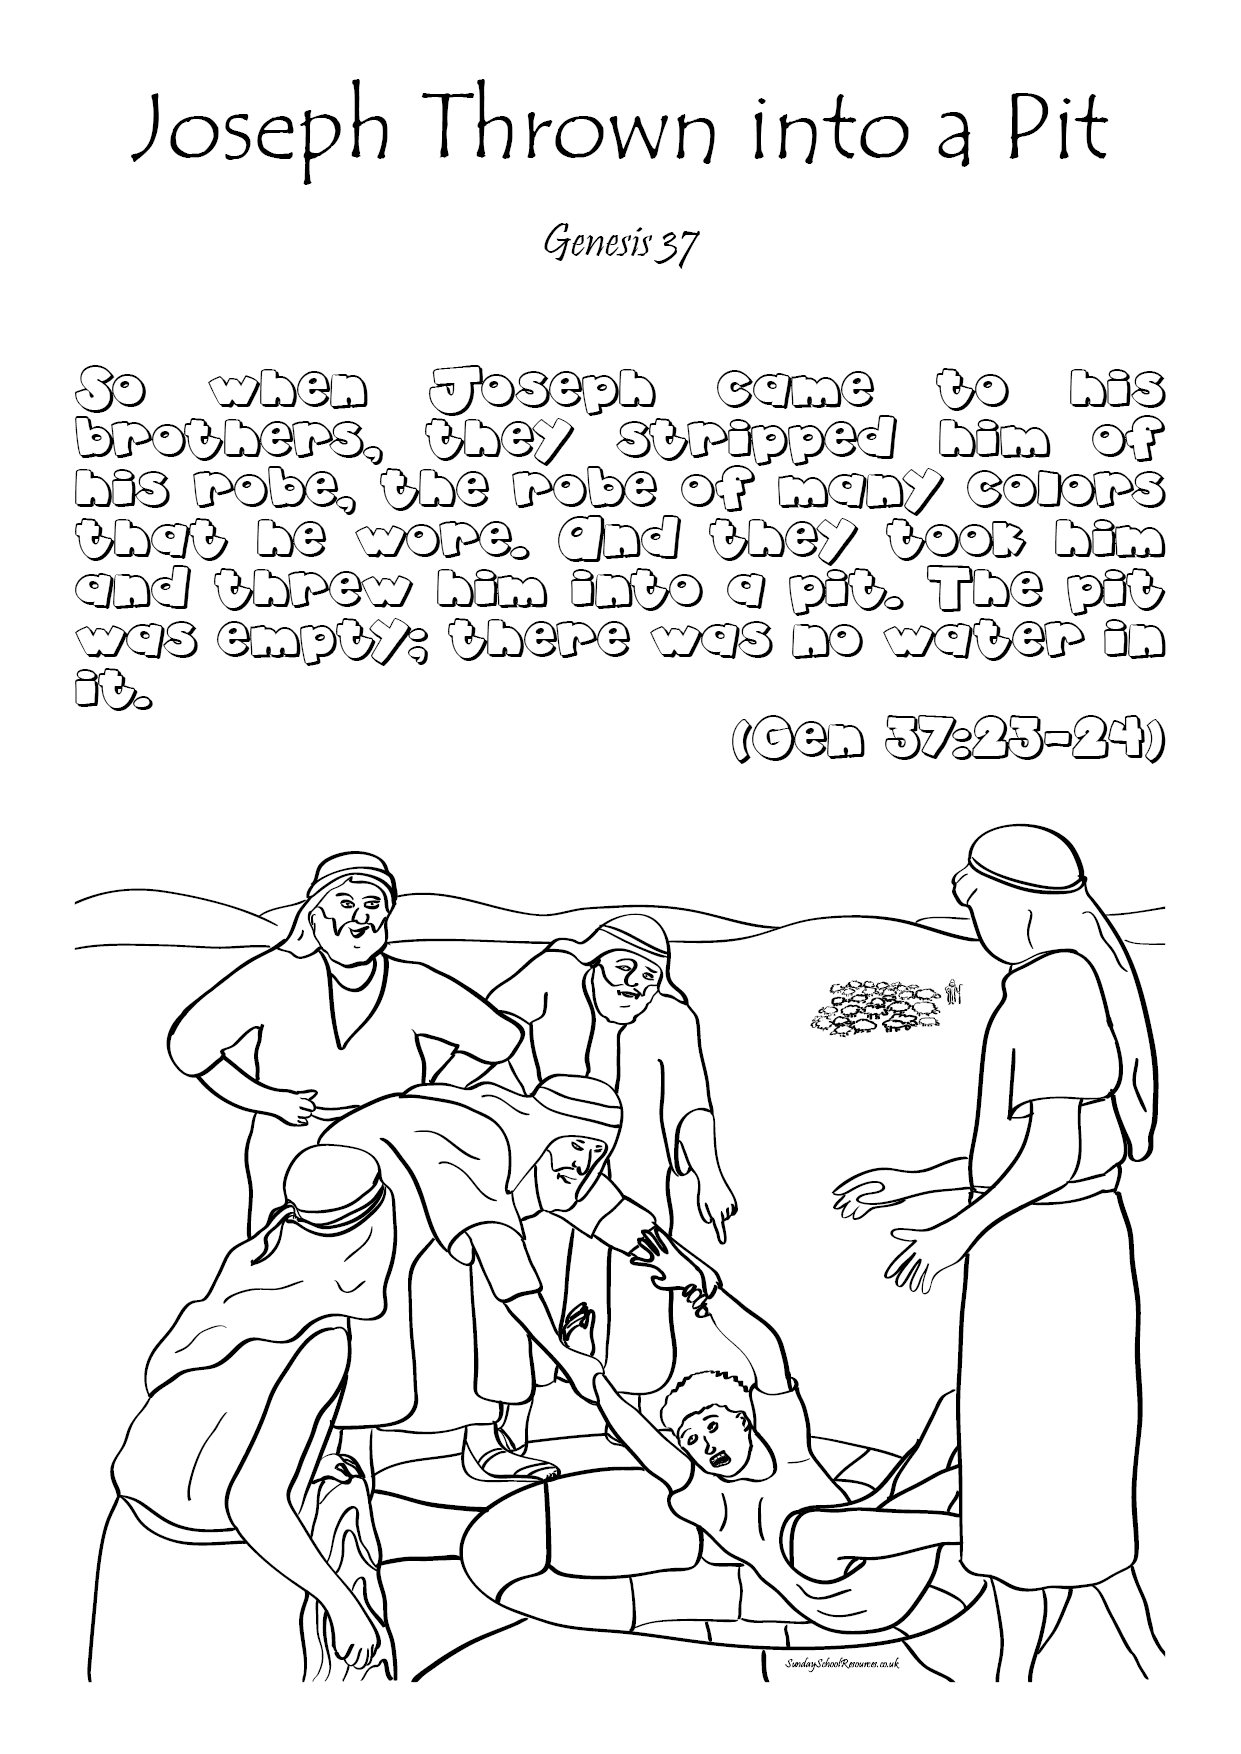 bible story coloring pages joseph joseph coat bible coloring pages printables free coloring story pages coloring bible joseph